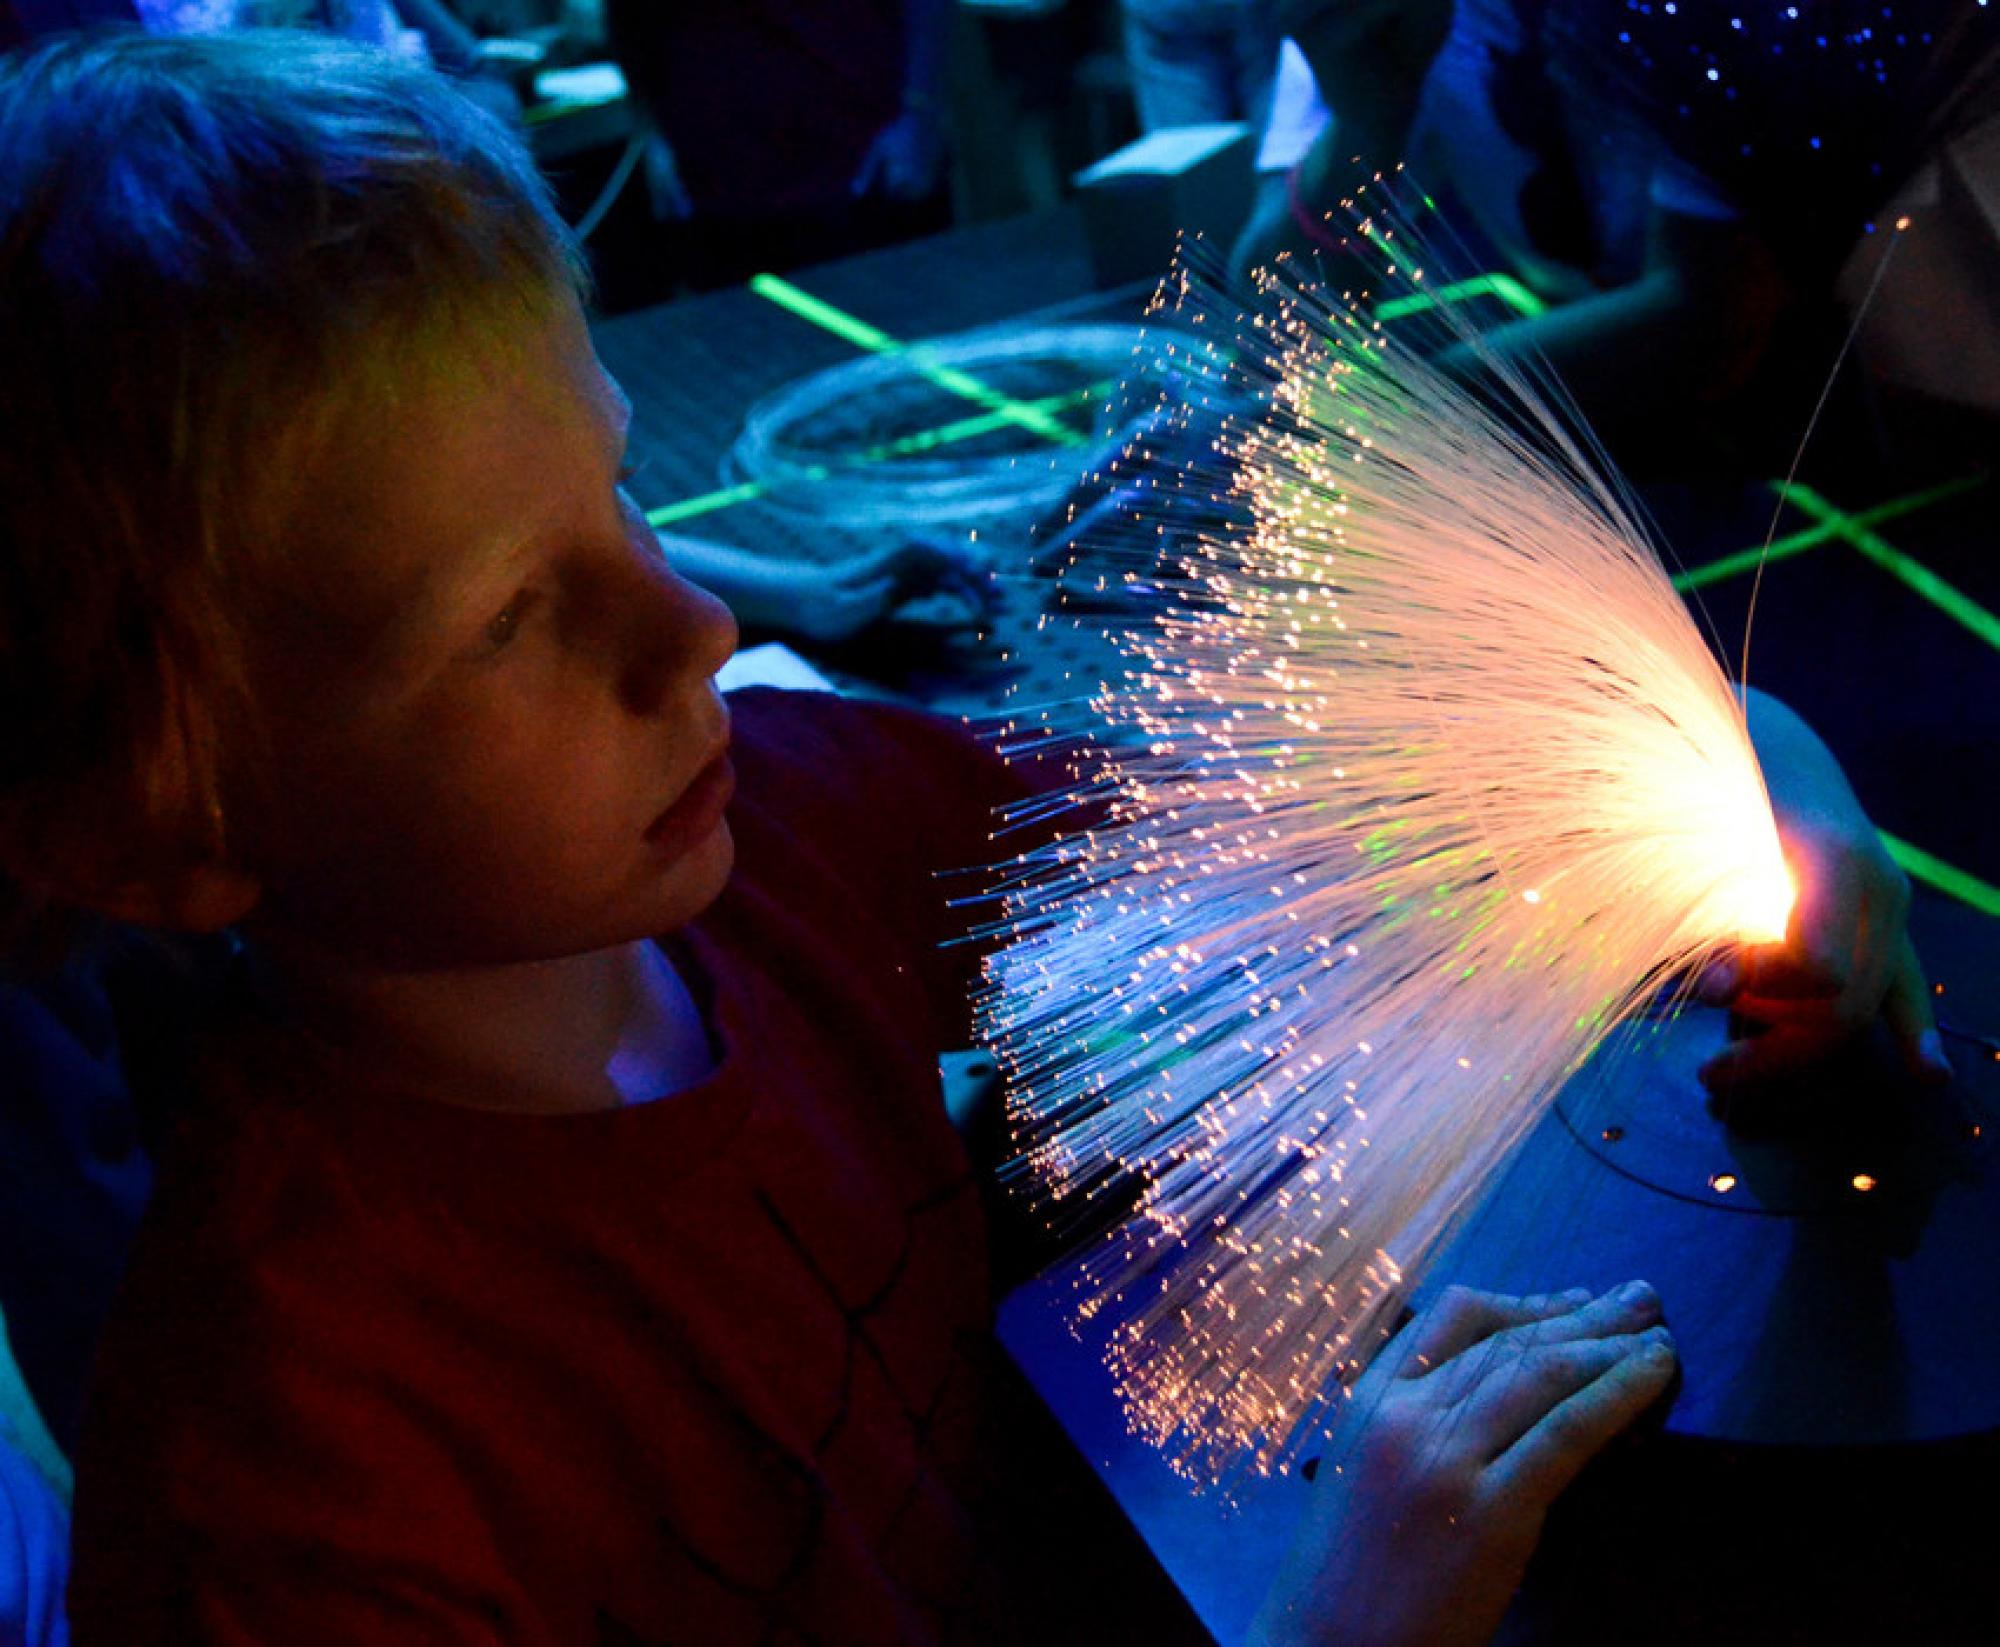 In celebration of its 50th anniversary this year, the UA College of Optical Sciences will hold its fourth annual Laser Fun Day to bring the science of optics alive for elementary and middle school students.